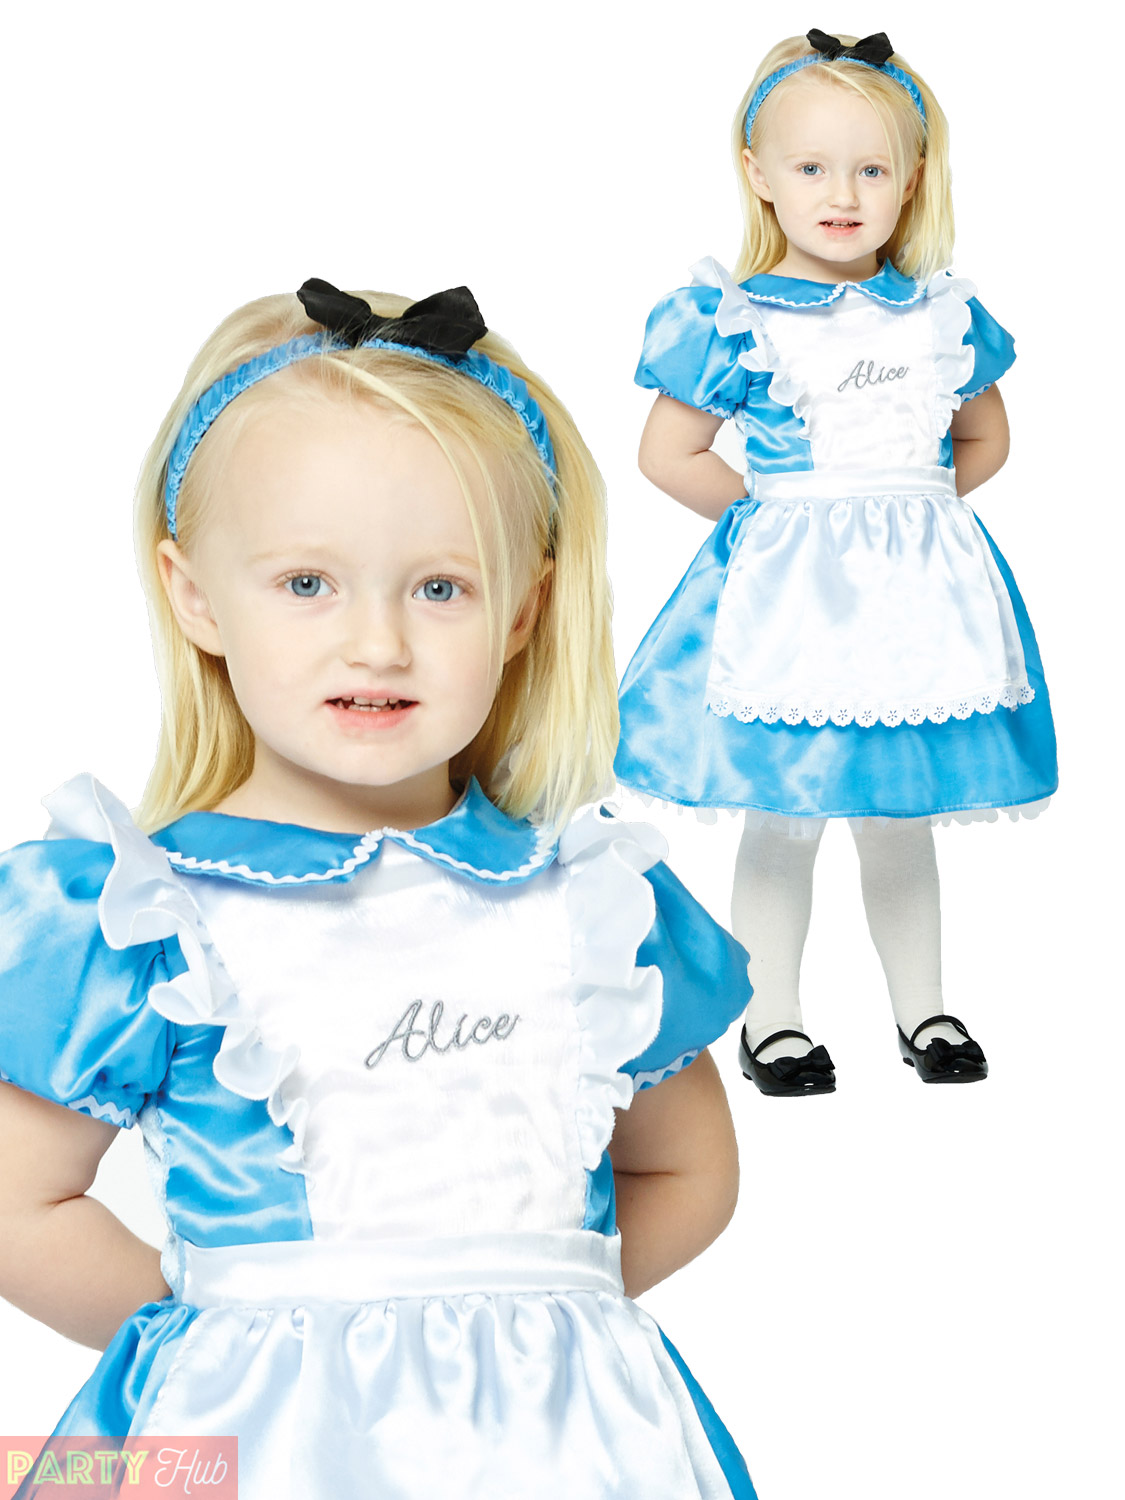 alice girls Find great deals on ebay for alice in wonderland costume girls and alice in wonderland party supplies shop with confidence.